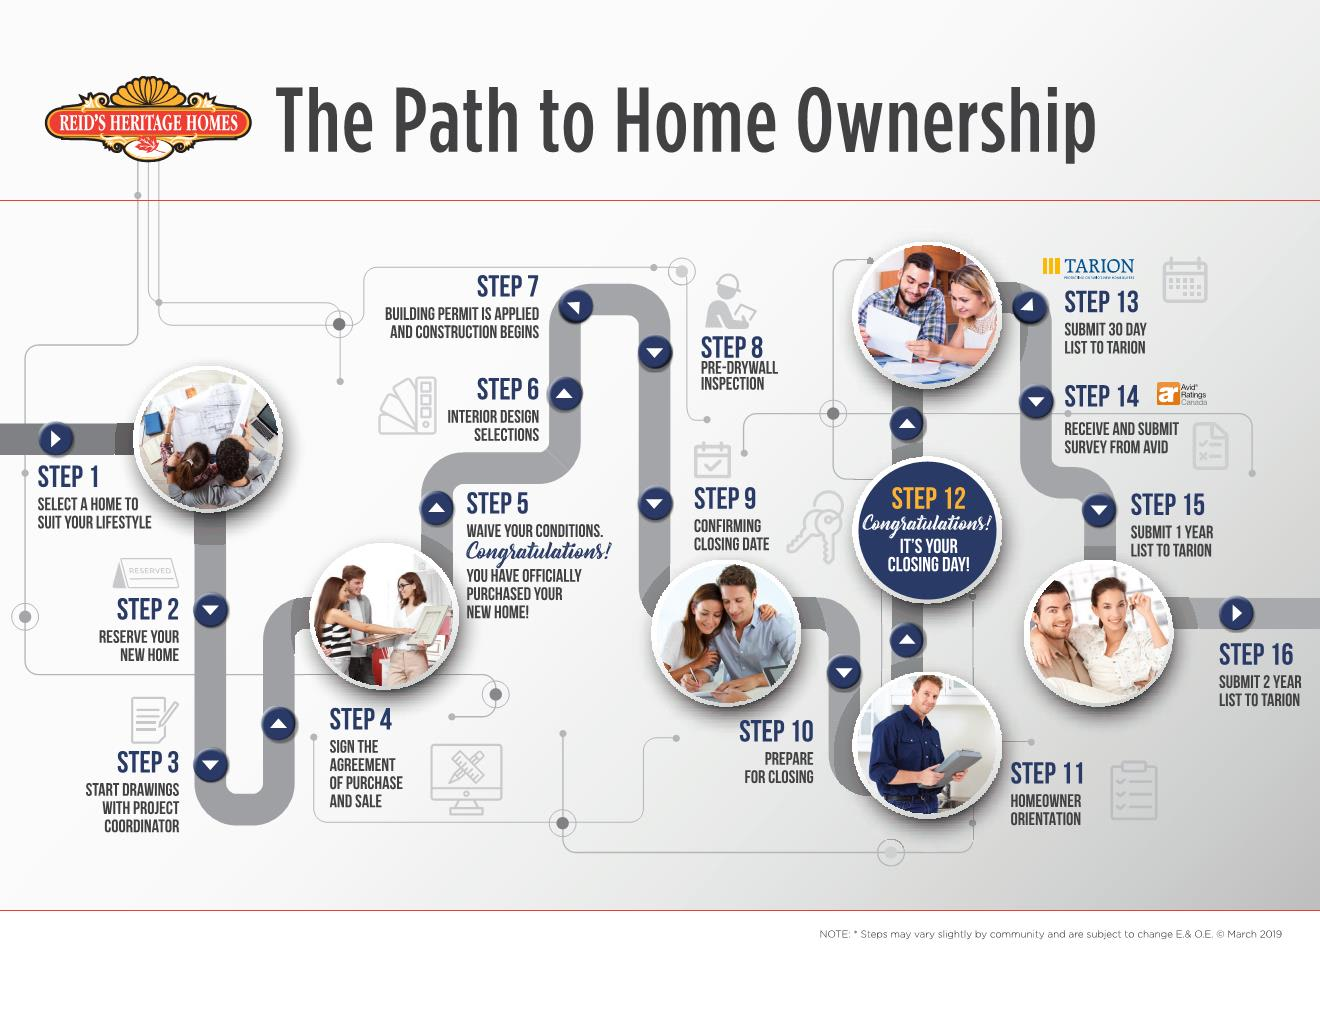 The Path to Home Ownership